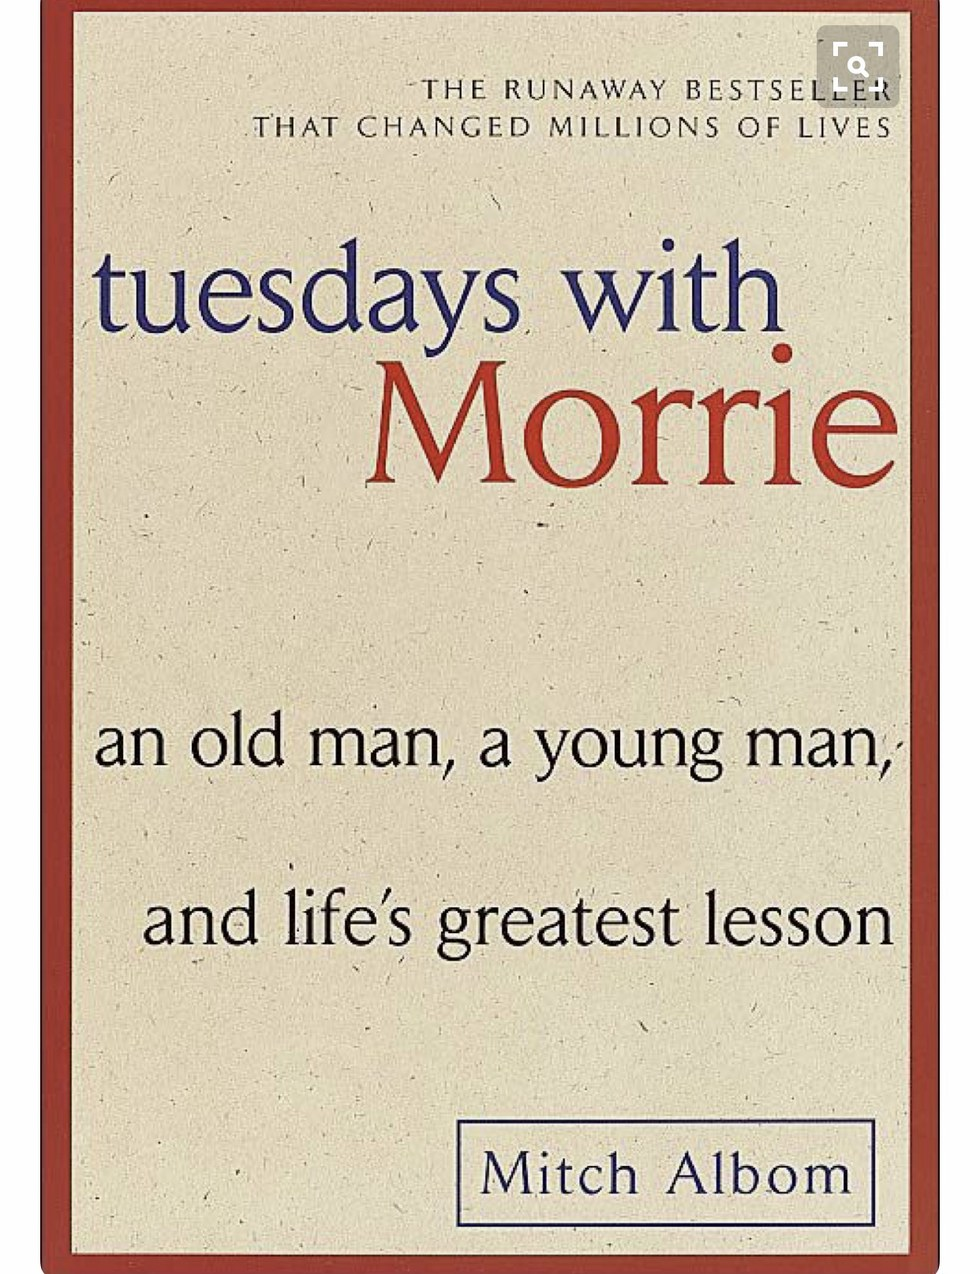 tuesdays with morrie review